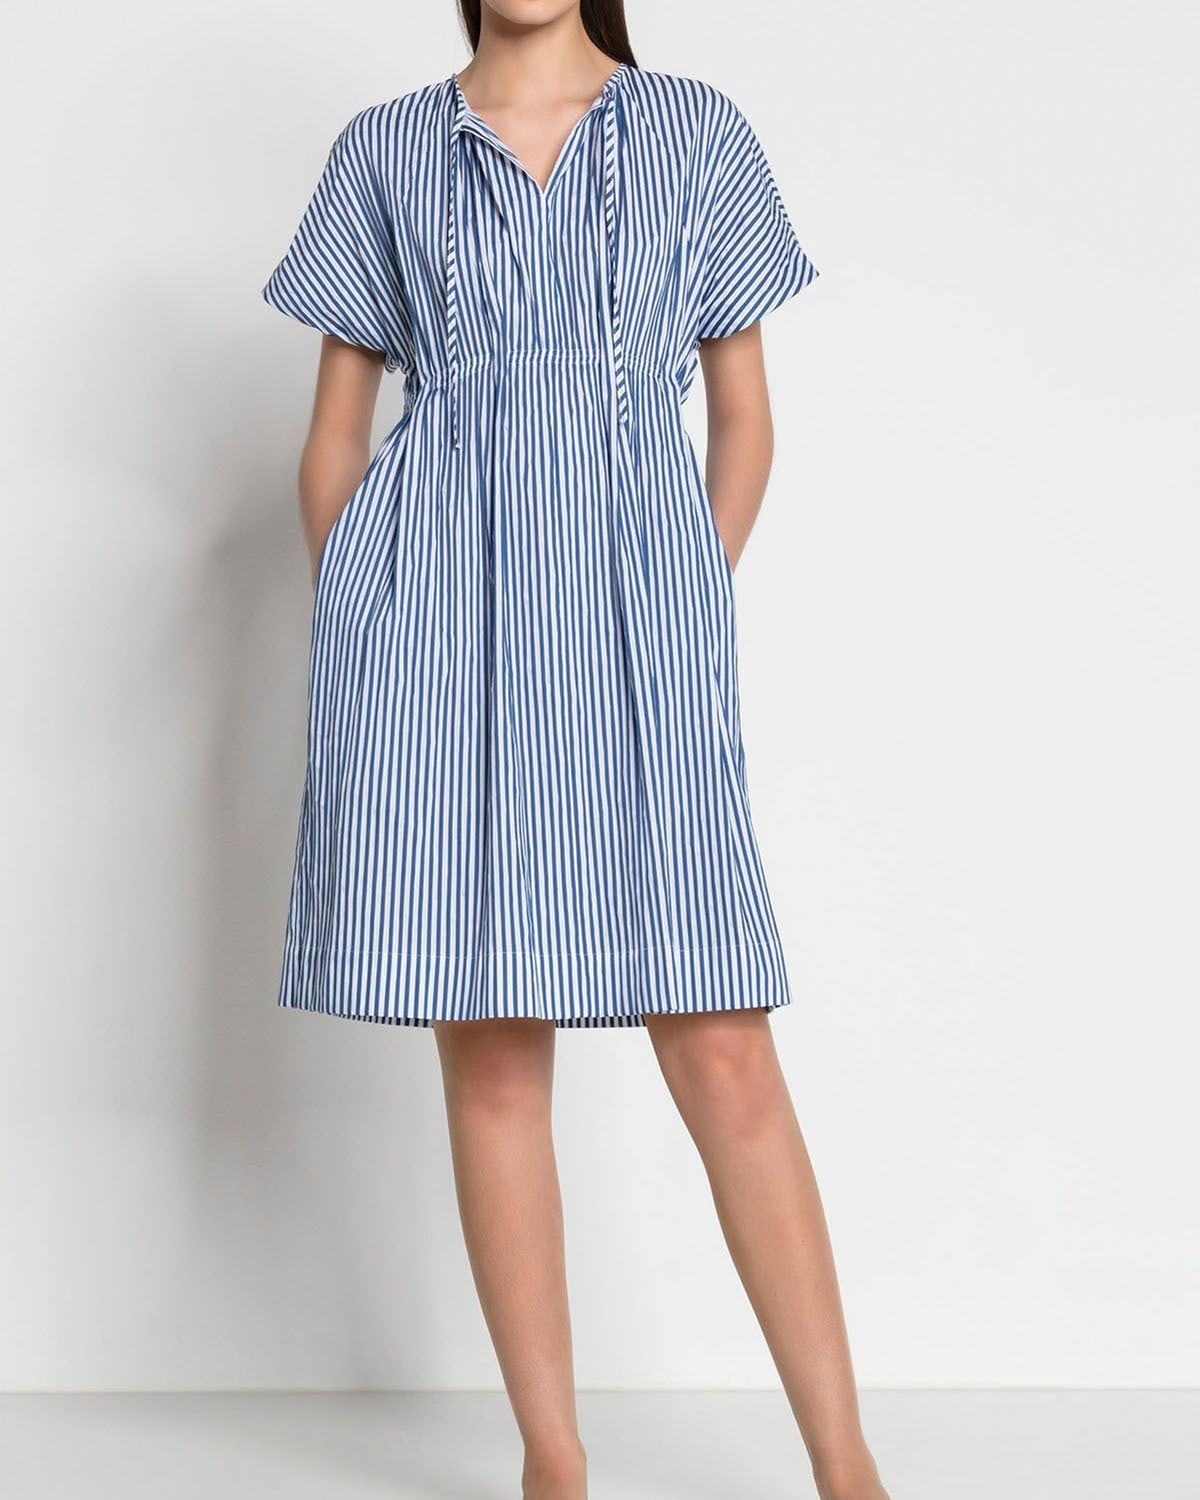 Luisa Cerano Blue And White Striped Summer Dress Summer Dresses Comfortable Outfits Striped Dress Summer [ 1500 x 1200 Pixel ]